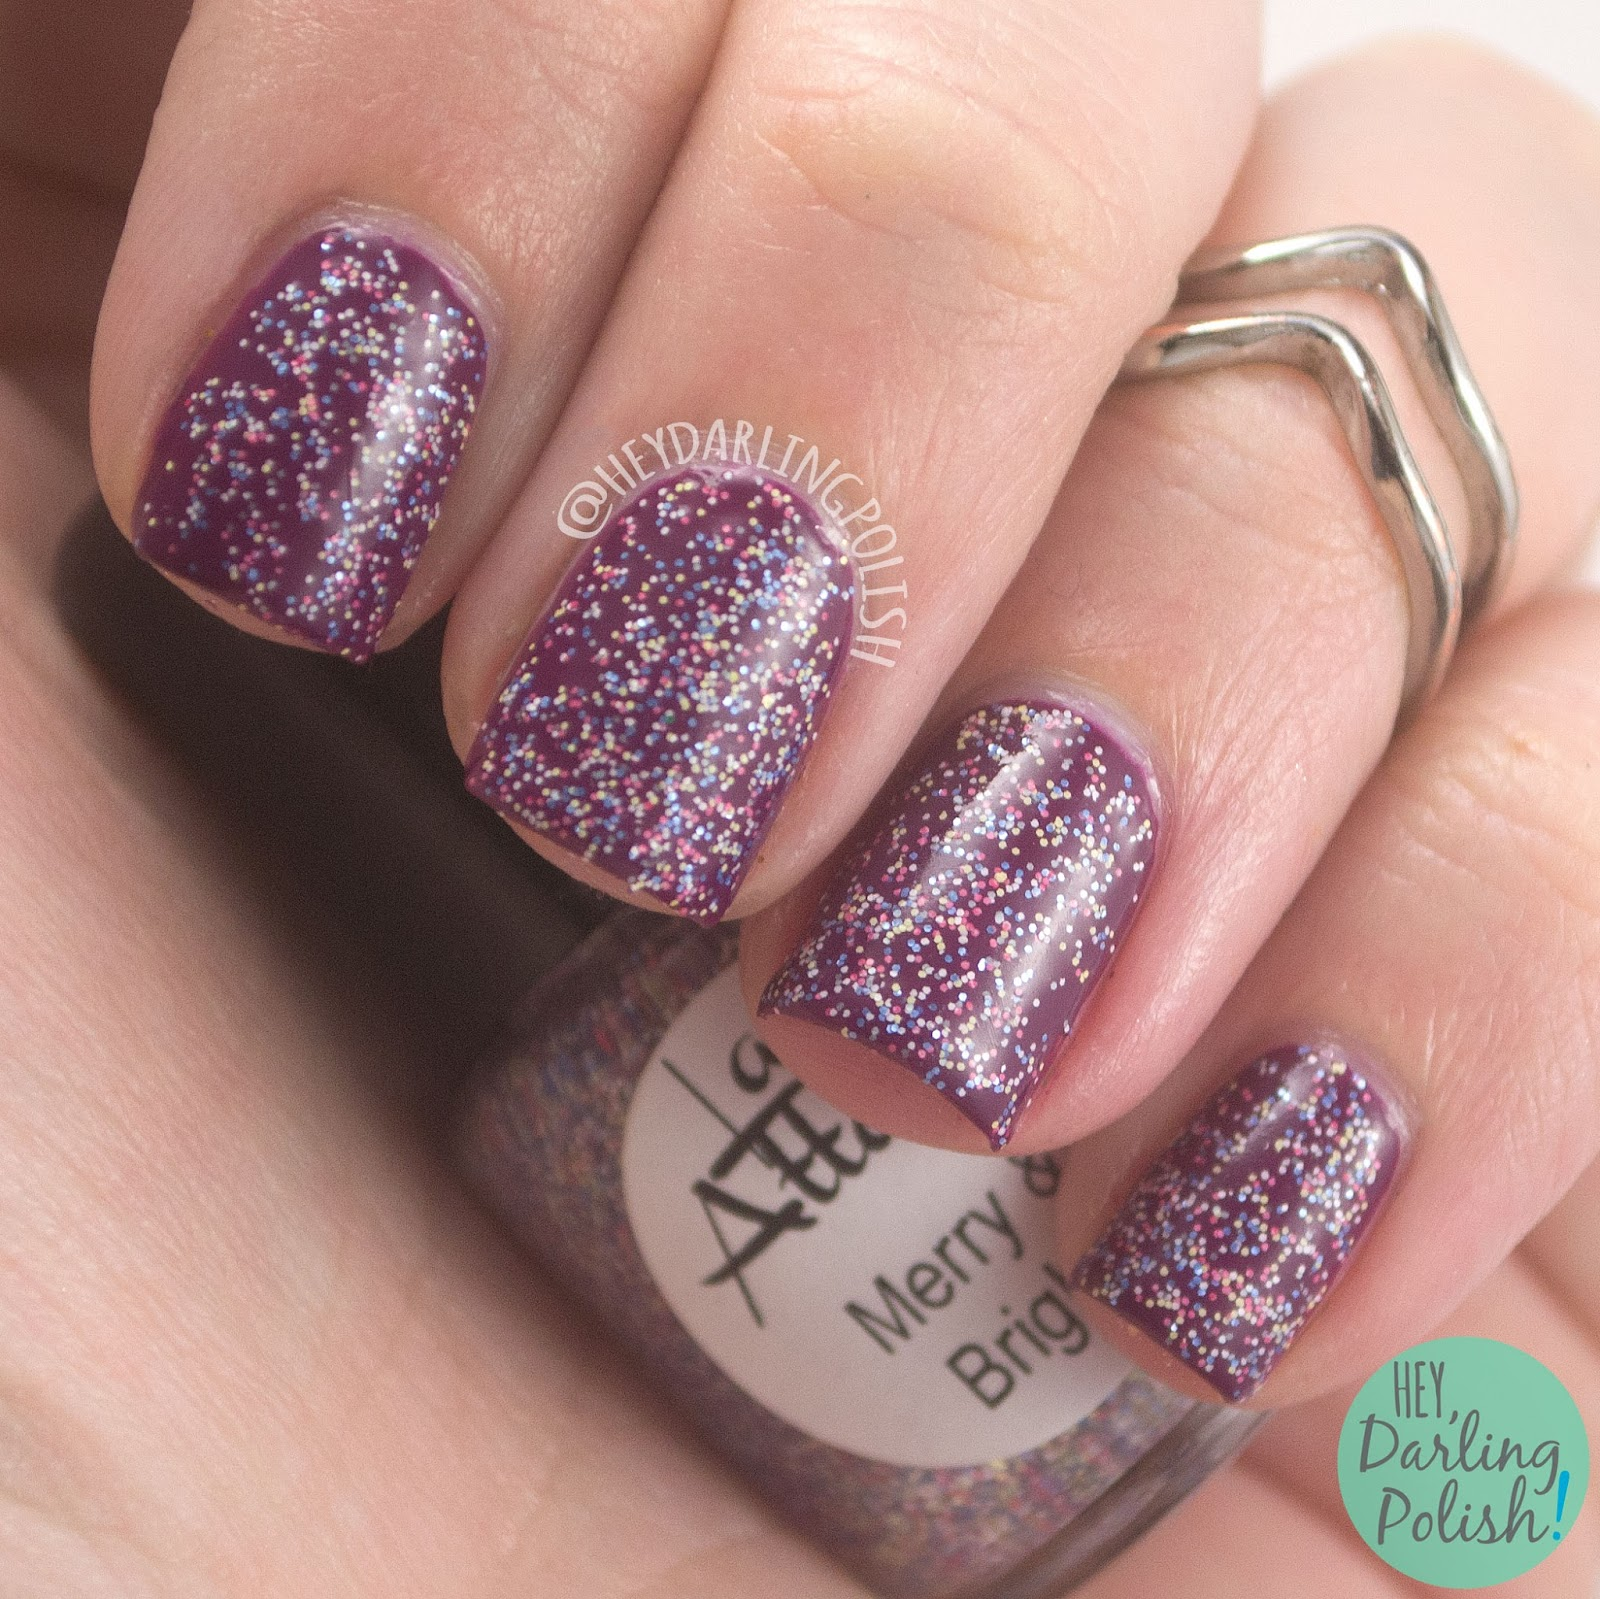 merry & bright, glitter, micro glitter, nails, nail polish, indie nail polish, indie polish, lac attack, festivus collection, christmas, holiday, hey darling polish, swatch, review